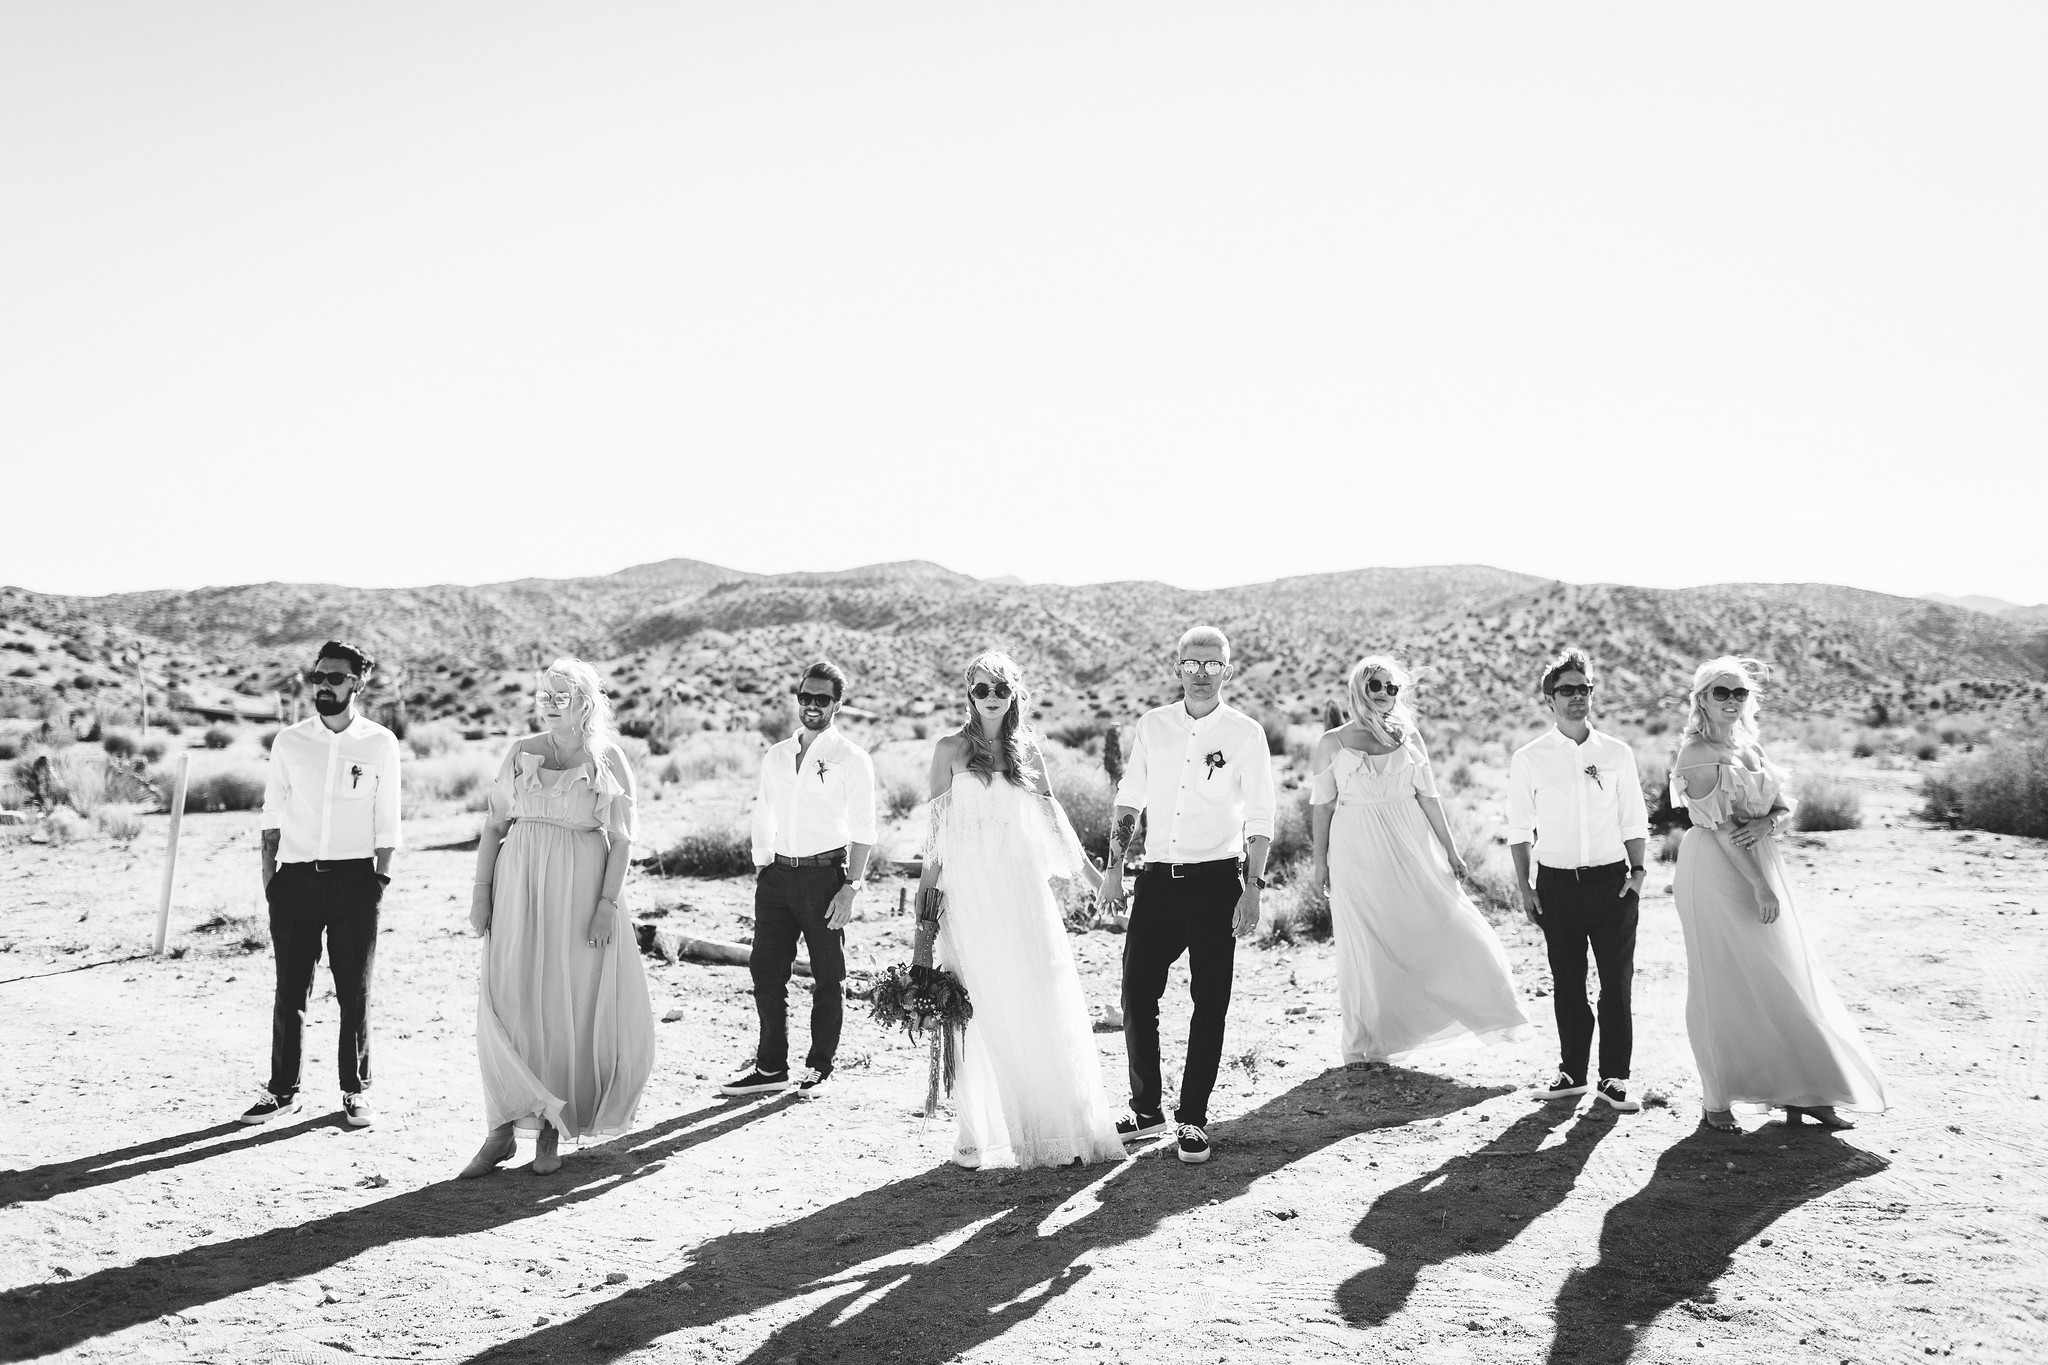 zoe-london-wedding-joshua-tree-45.jpg